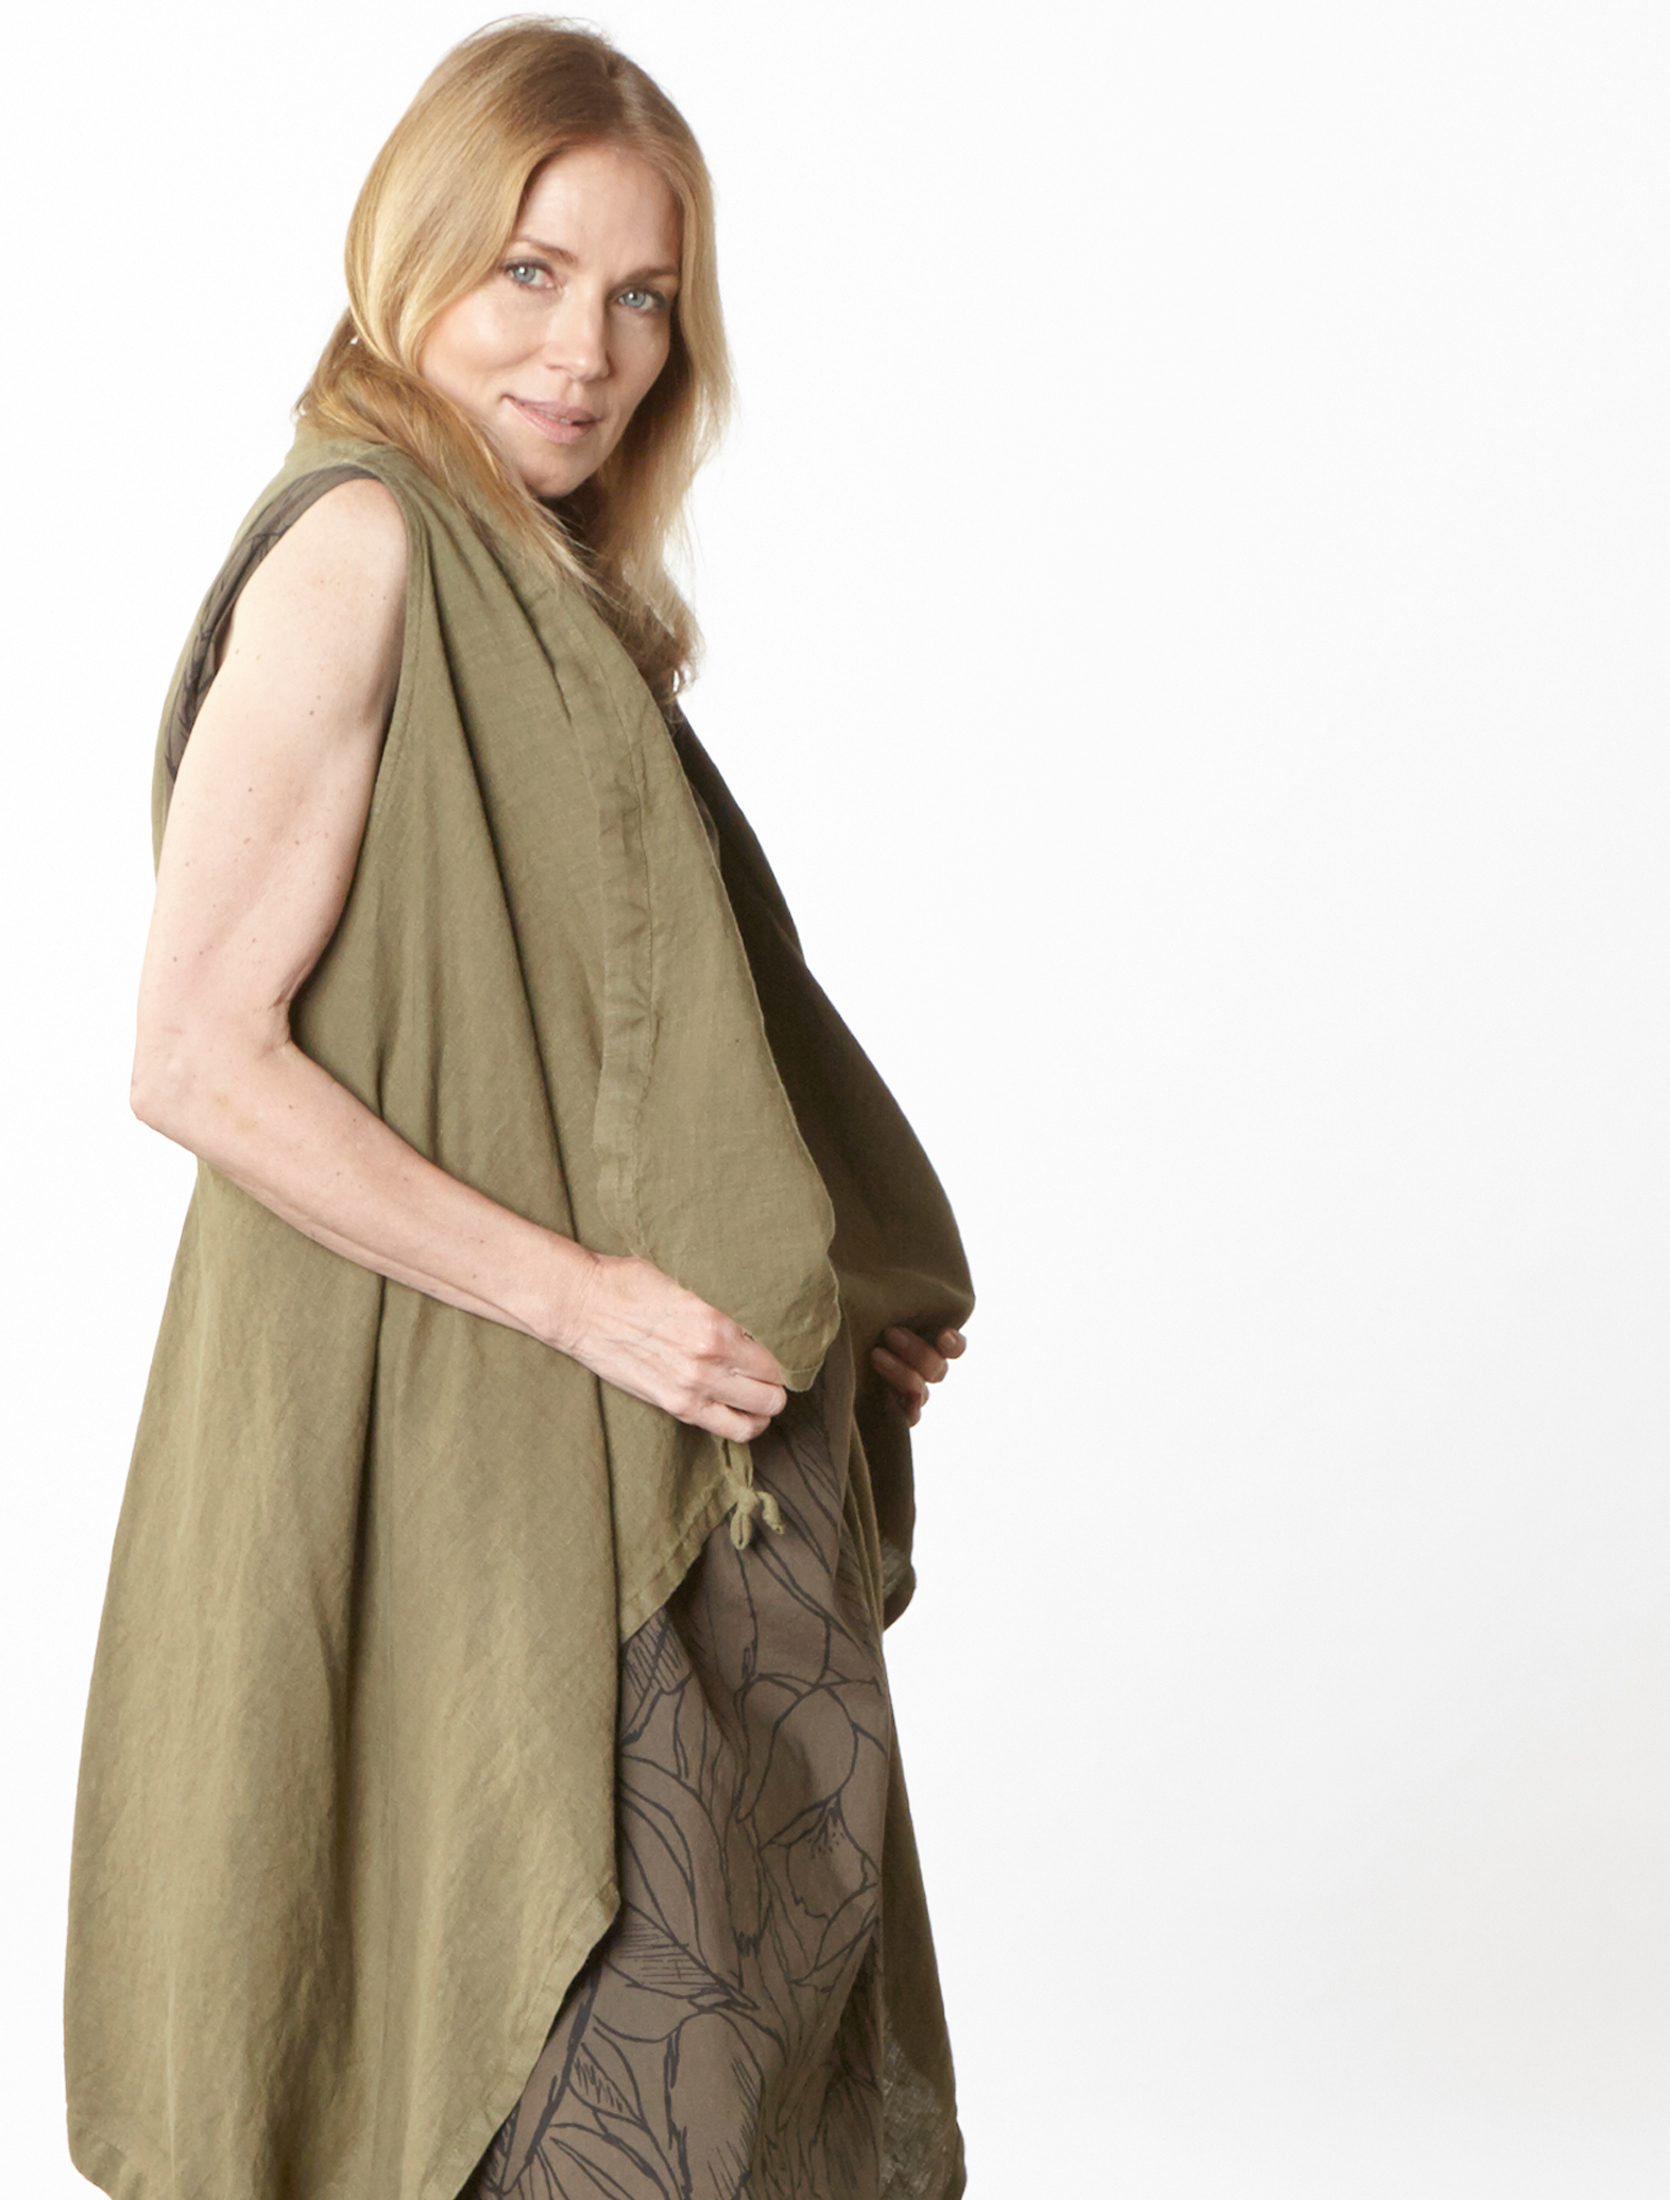 Eve Vest in Grove Light Linen, Henrietta Dress in Kvass Flower Poplin